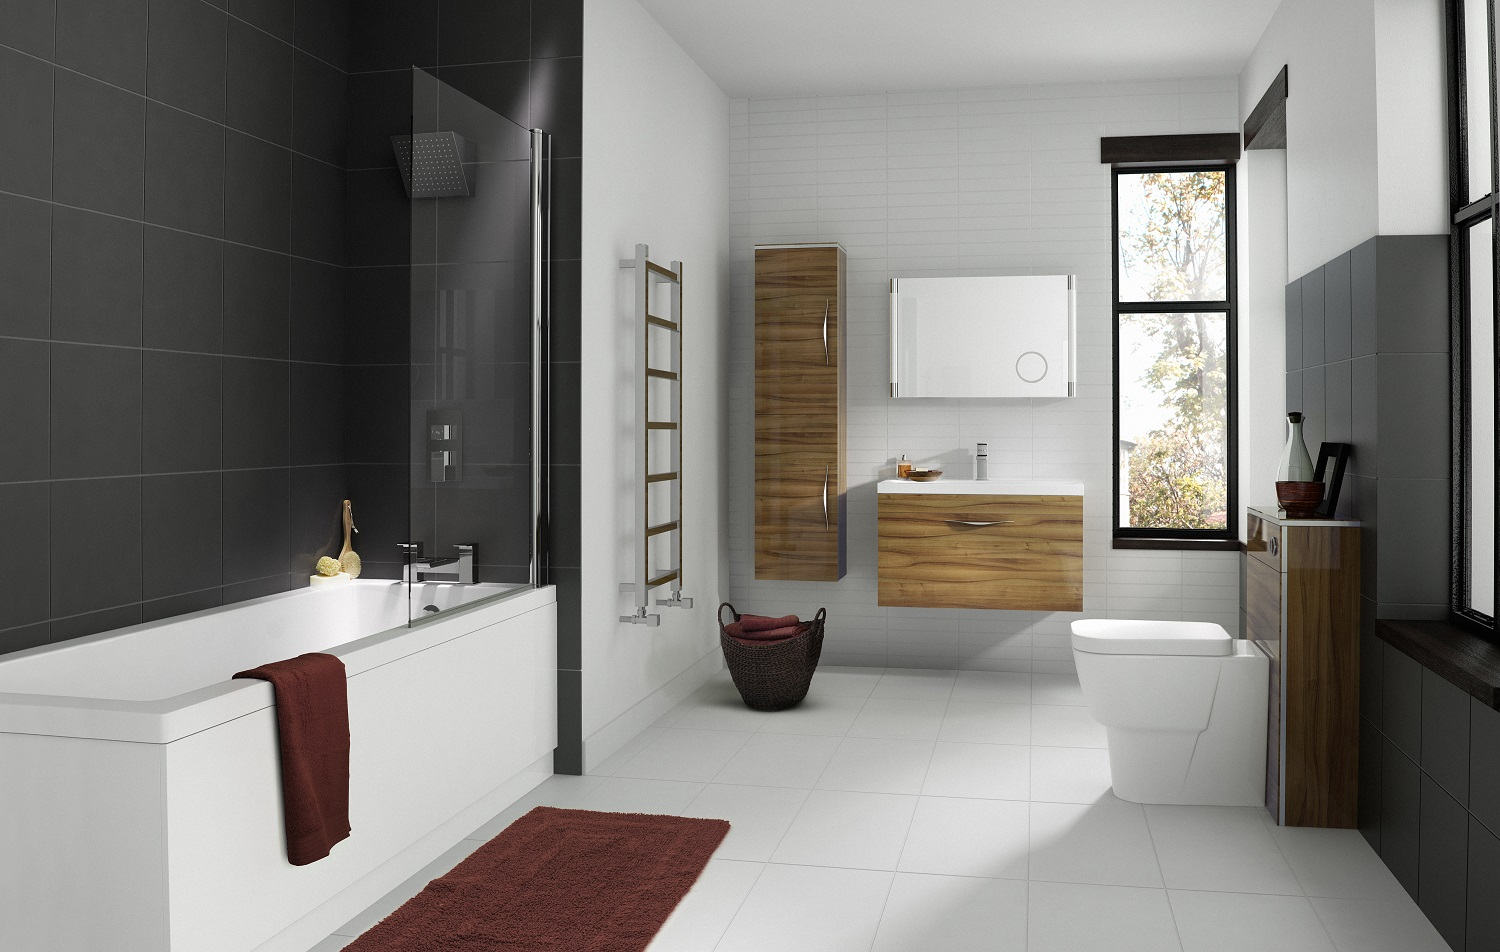 how much does a new bathroom cost bigbathroomshop. Black Bedroom Furniture Sets. Home Design Ideas